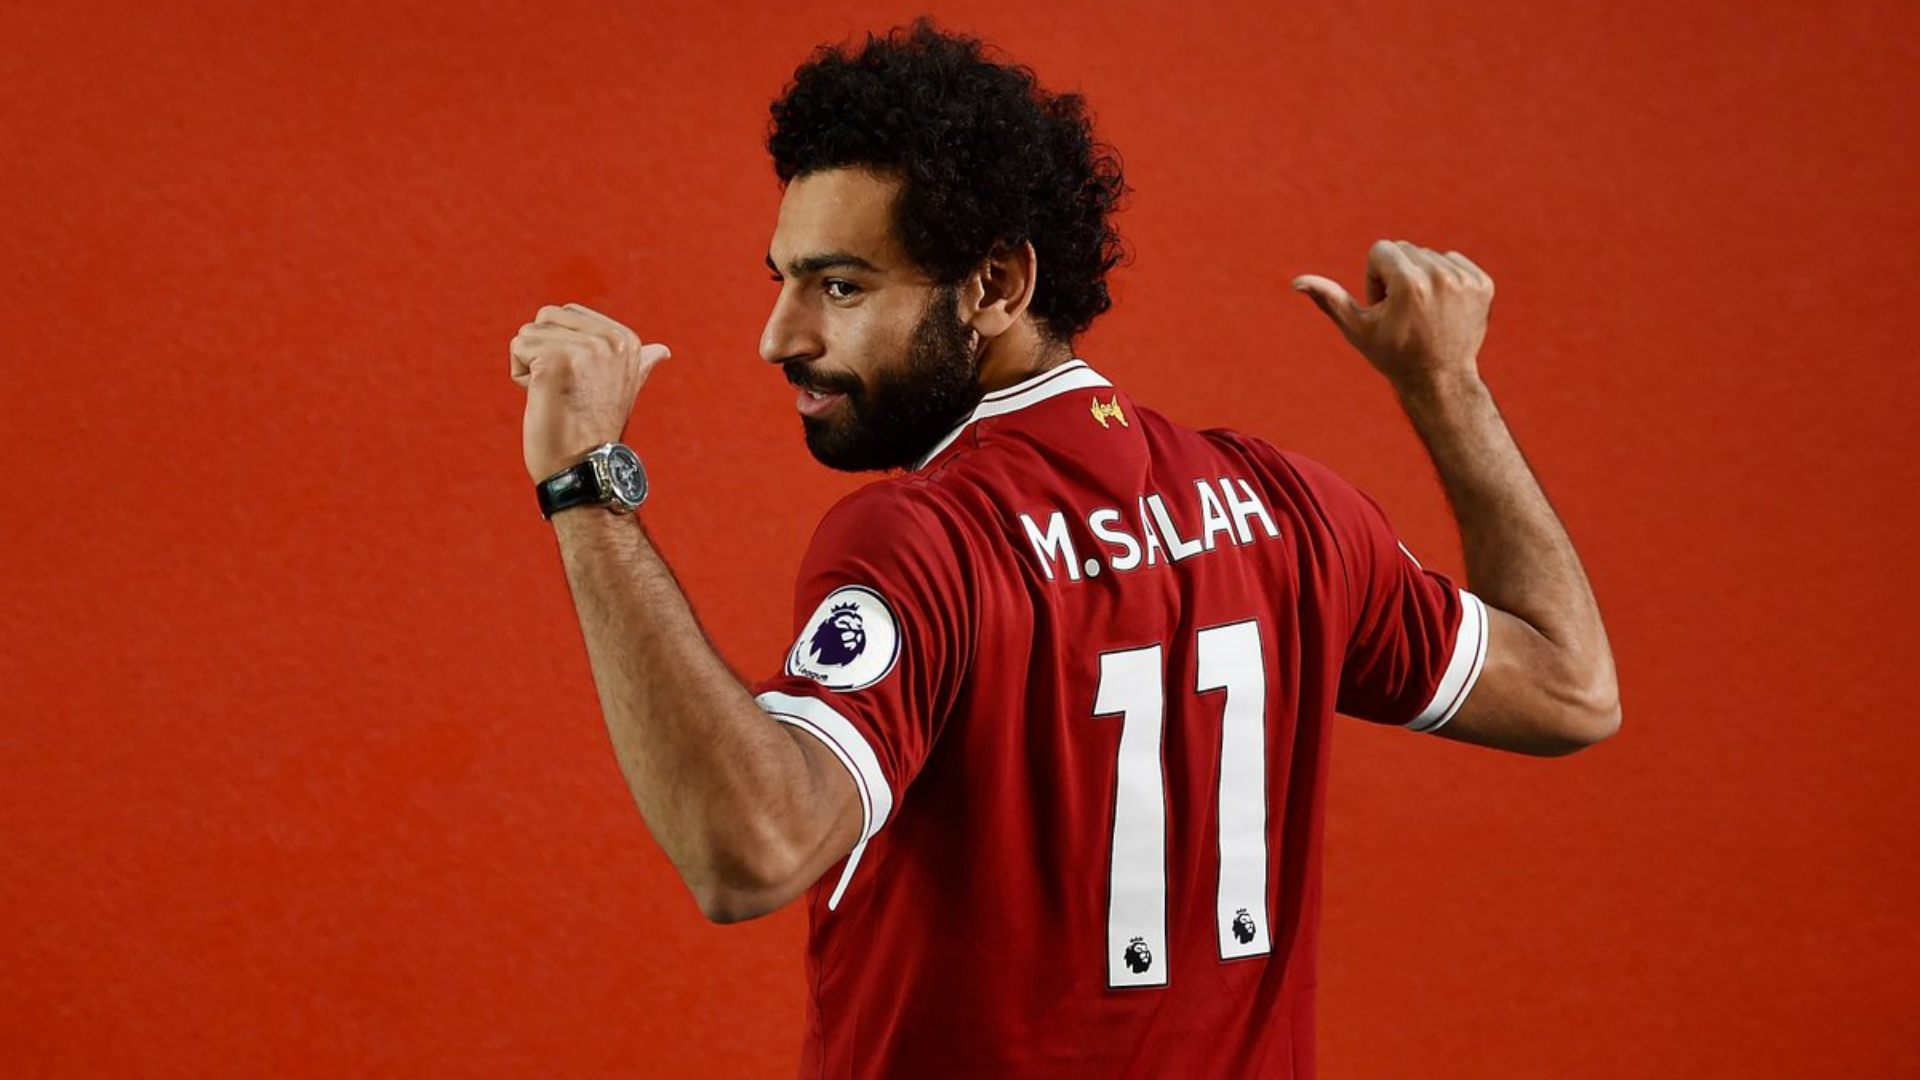 Salah never returned to Fiorentina. Instead, he joined Italian rivals AS Roma, also on the basis of a loan deal.